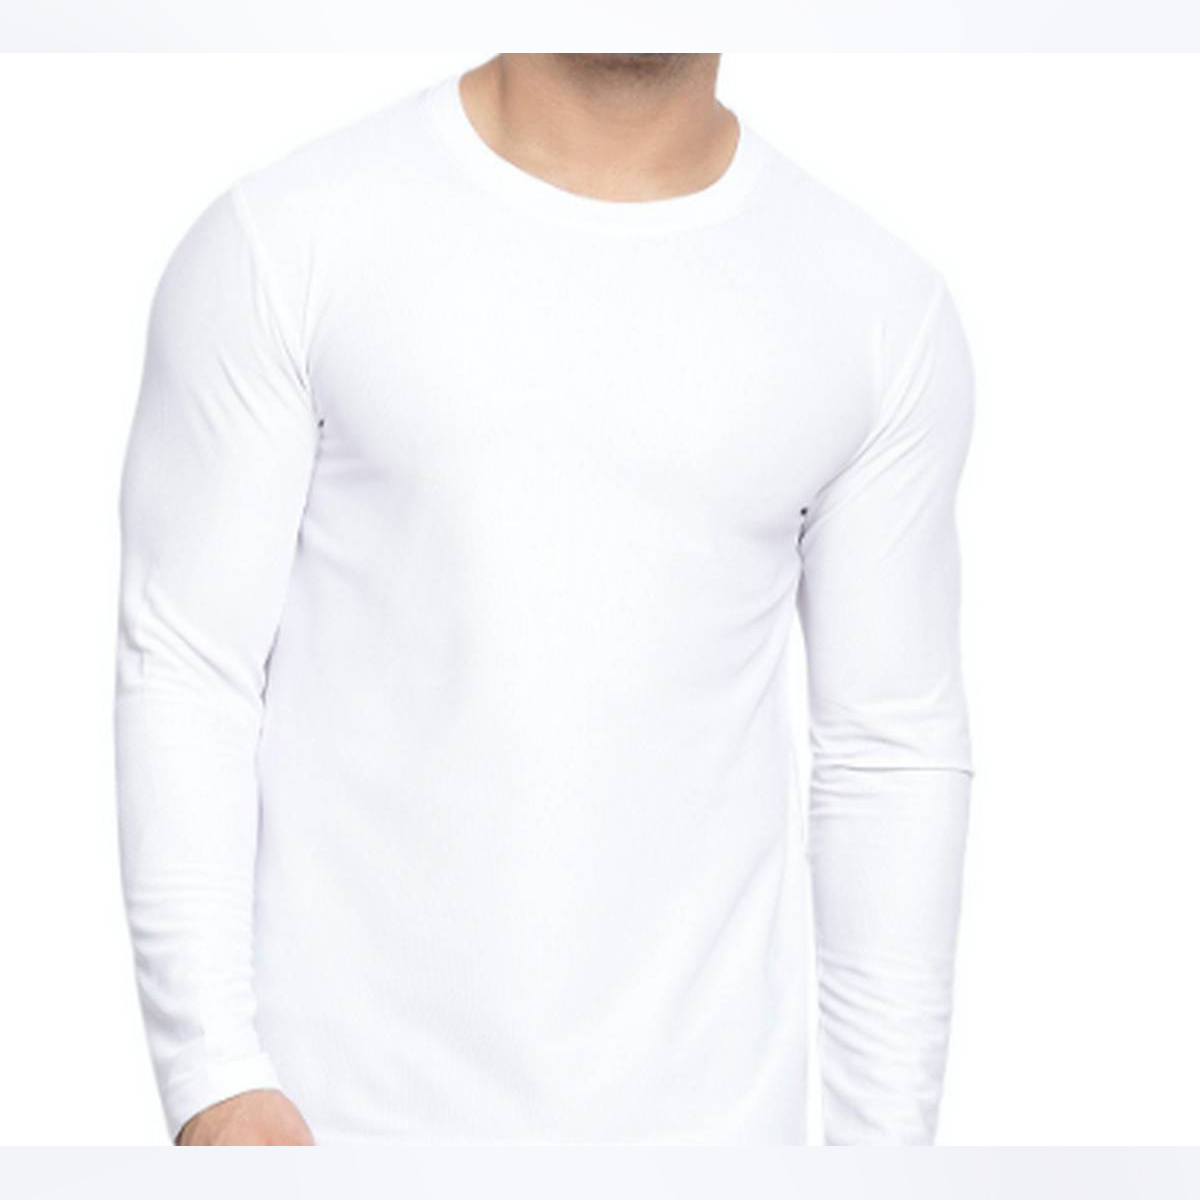 Hinz Men's Essential Round Neck (Full Sleeves) Combed Yarn